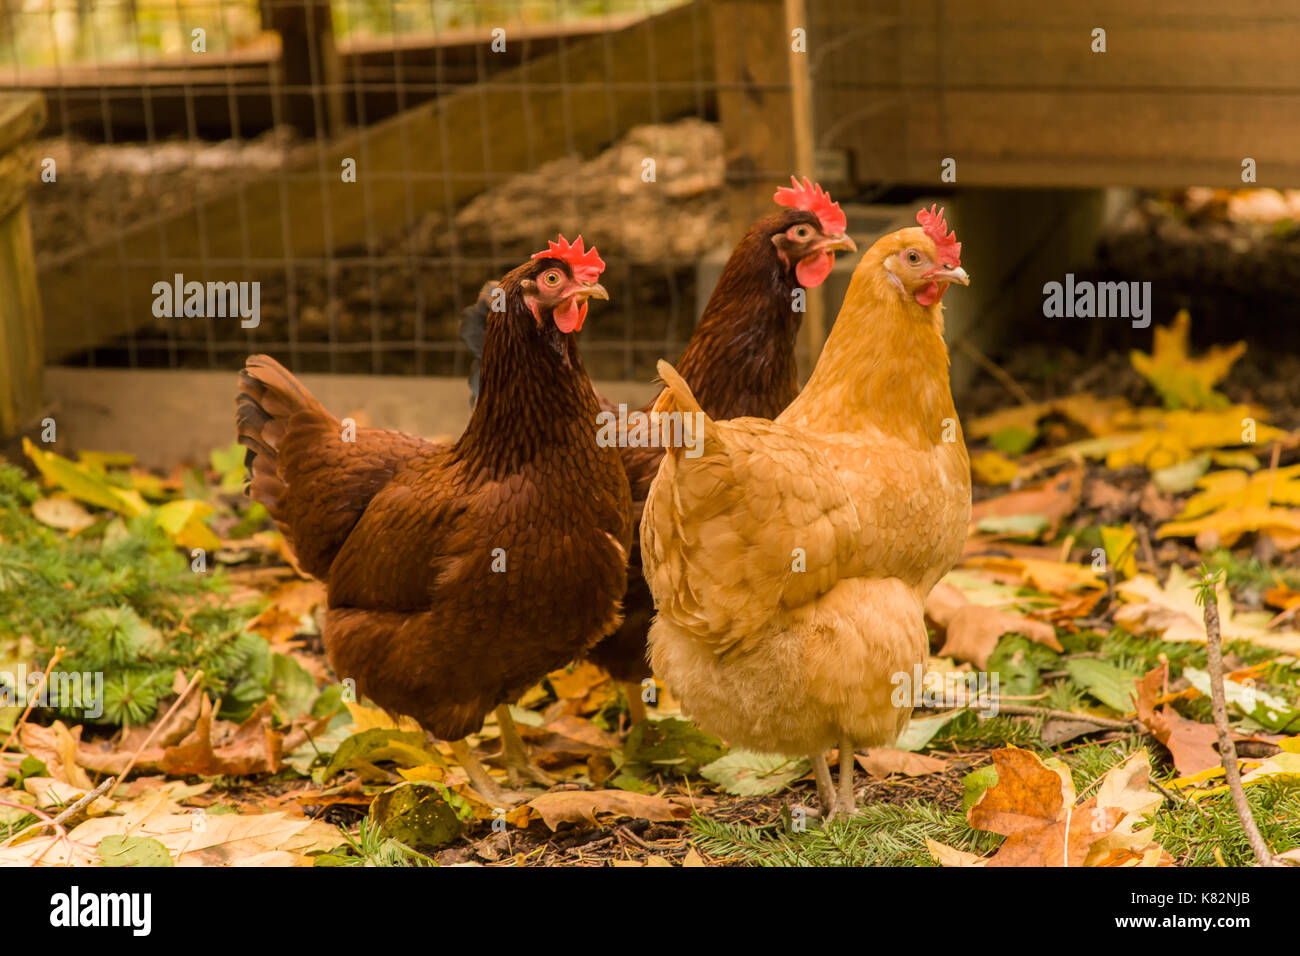 Free-ranging Buff Orpington and Rhode Island Red chickens, walking outside their coop, in western Washington, USA Stock Photo